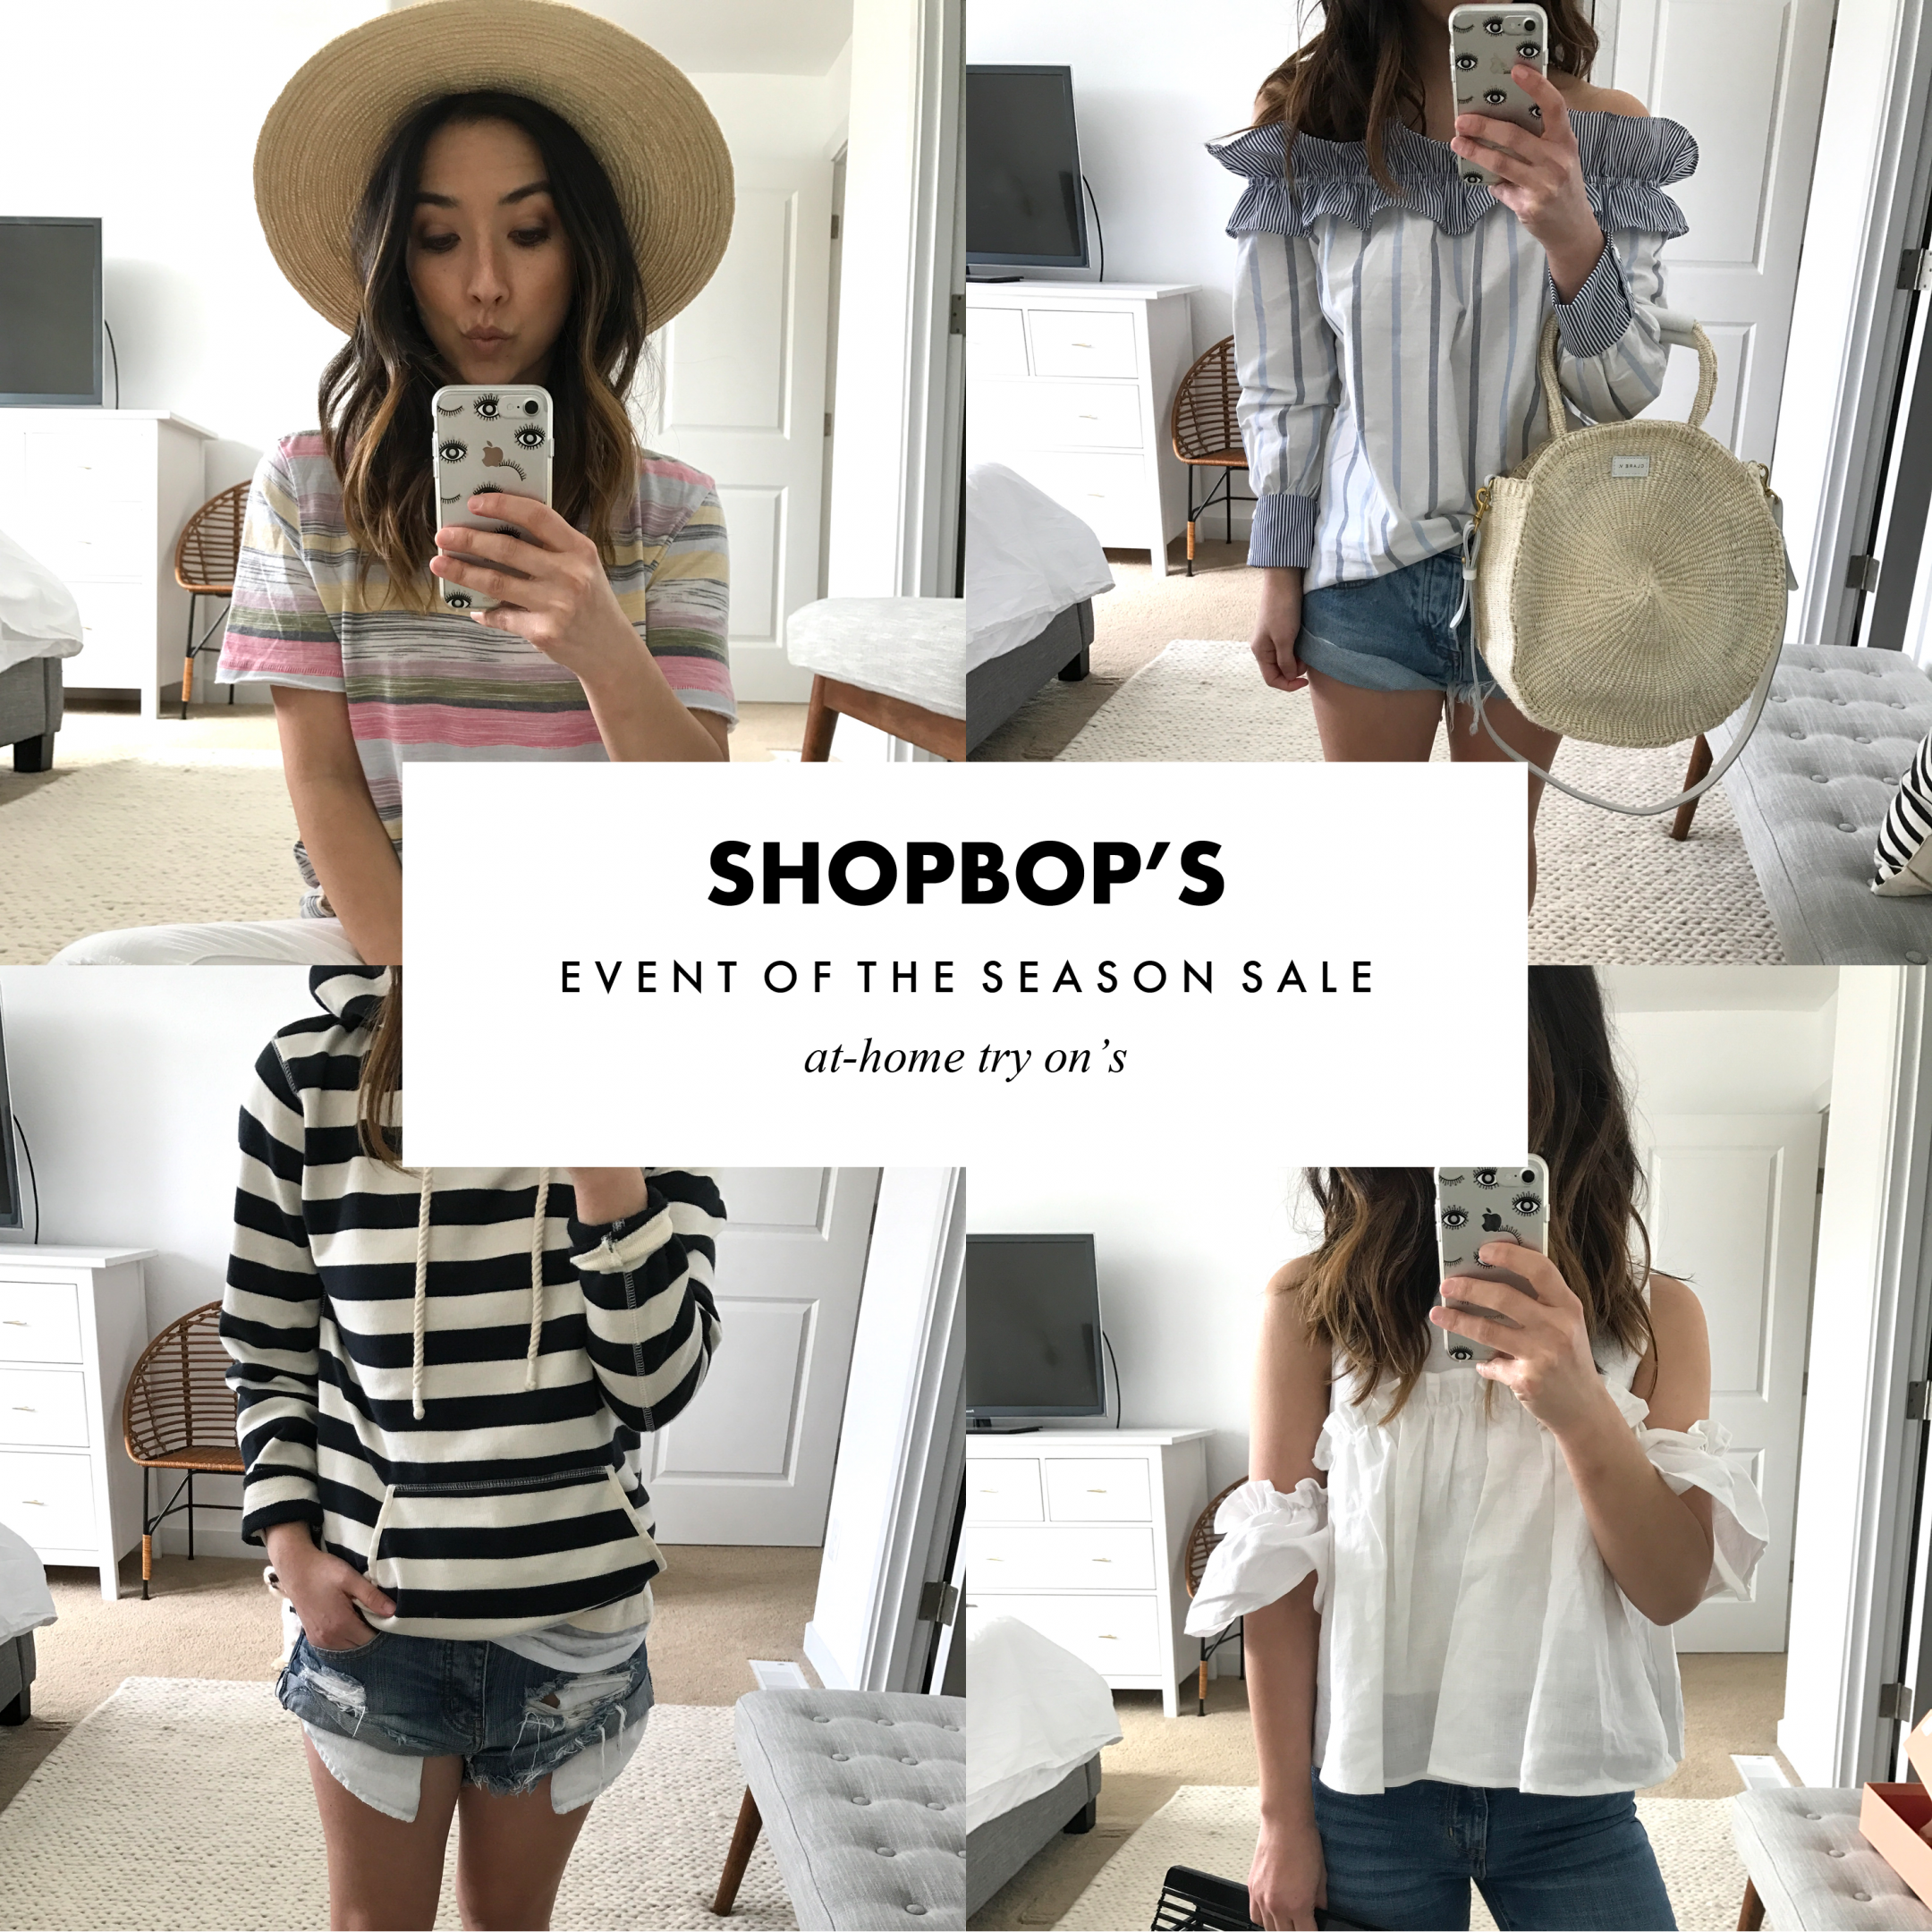 aa5e884e65ff2 Shopbop Event of the Season Sale - At Home Try On s